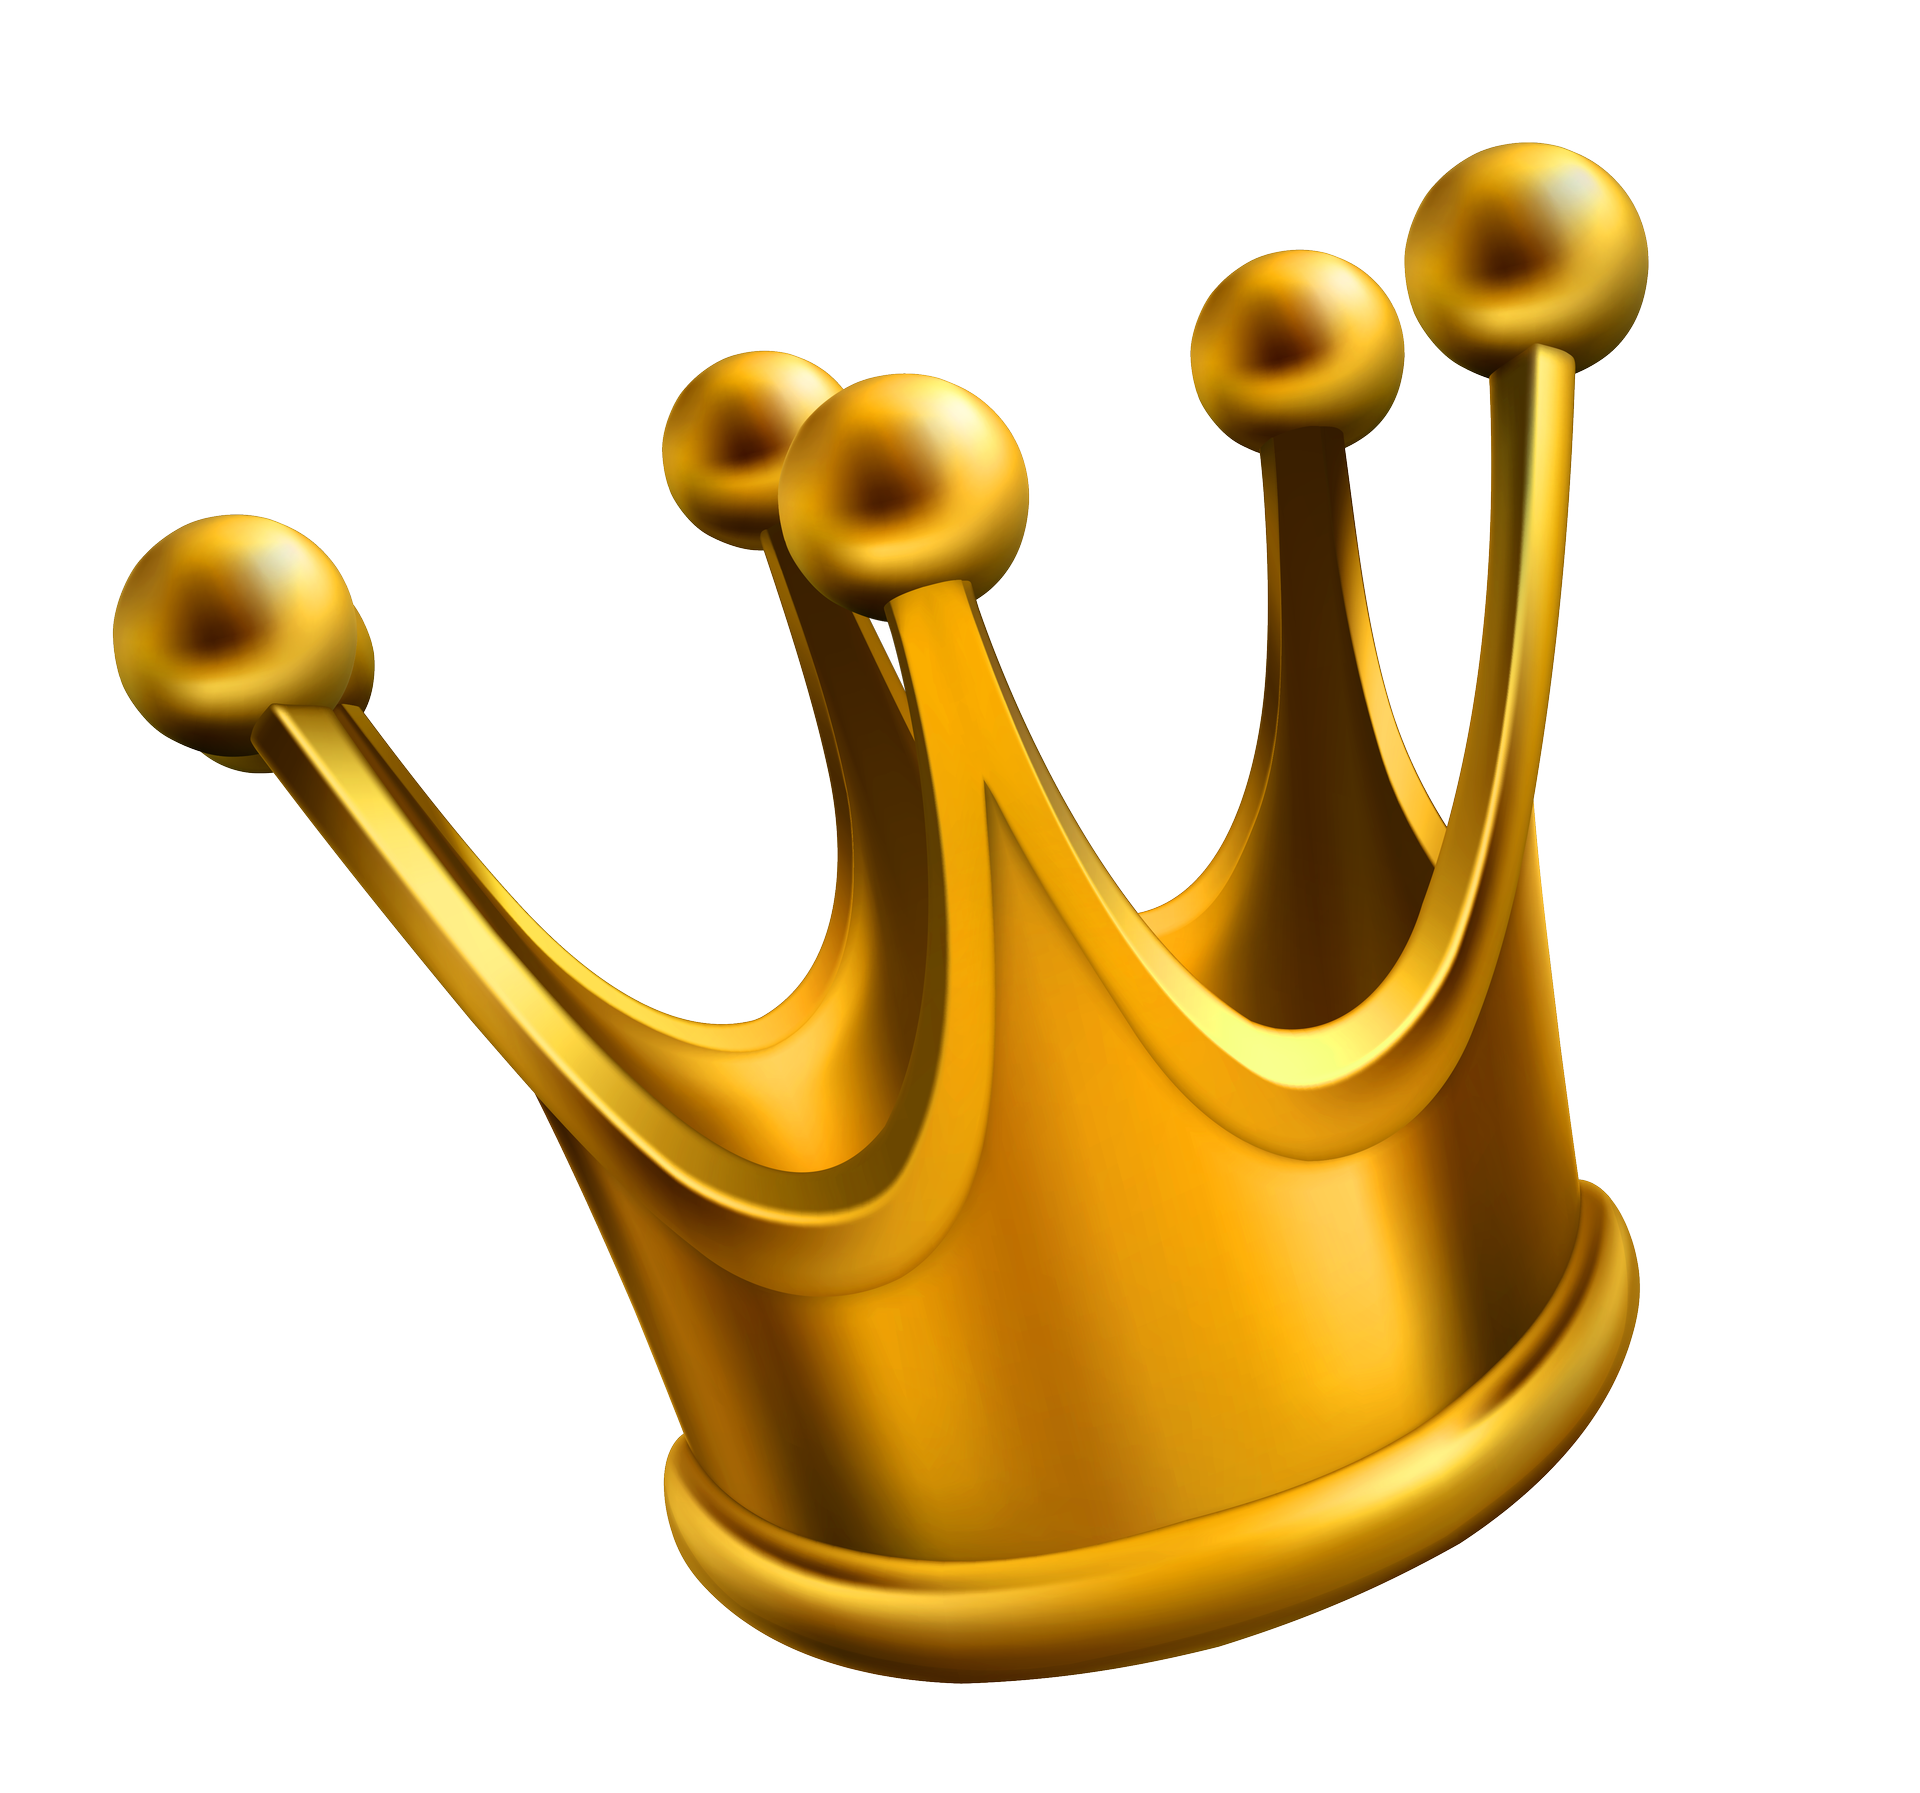 1920x1793 Collection Of King Clipart No Background High Quality, Free